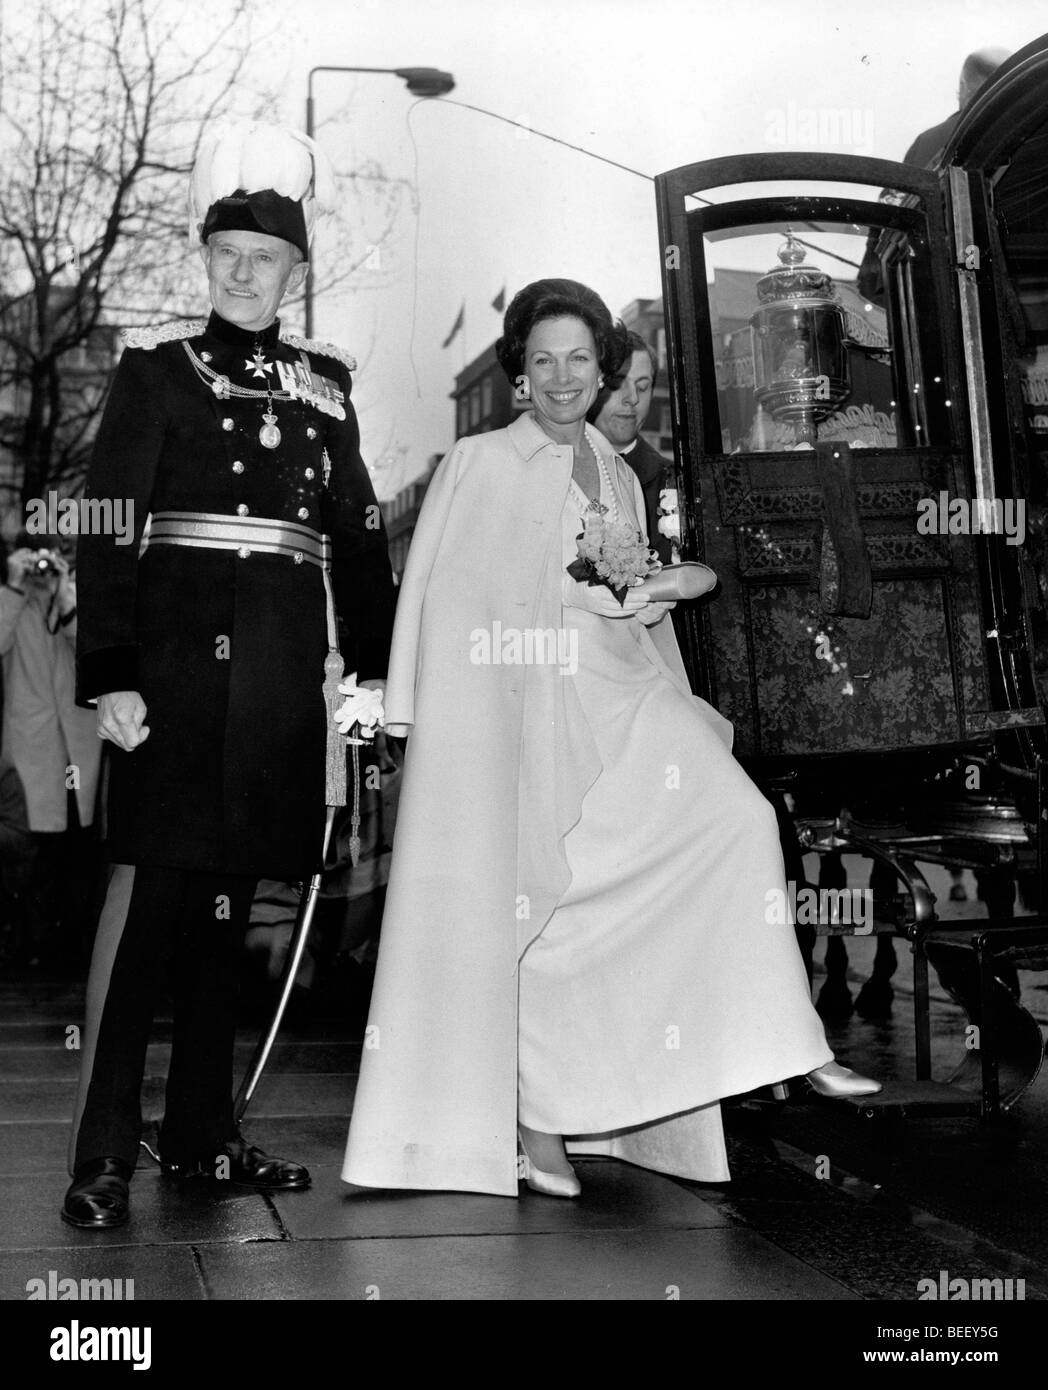 Princess Anne boarding a carriage. Stock Photo